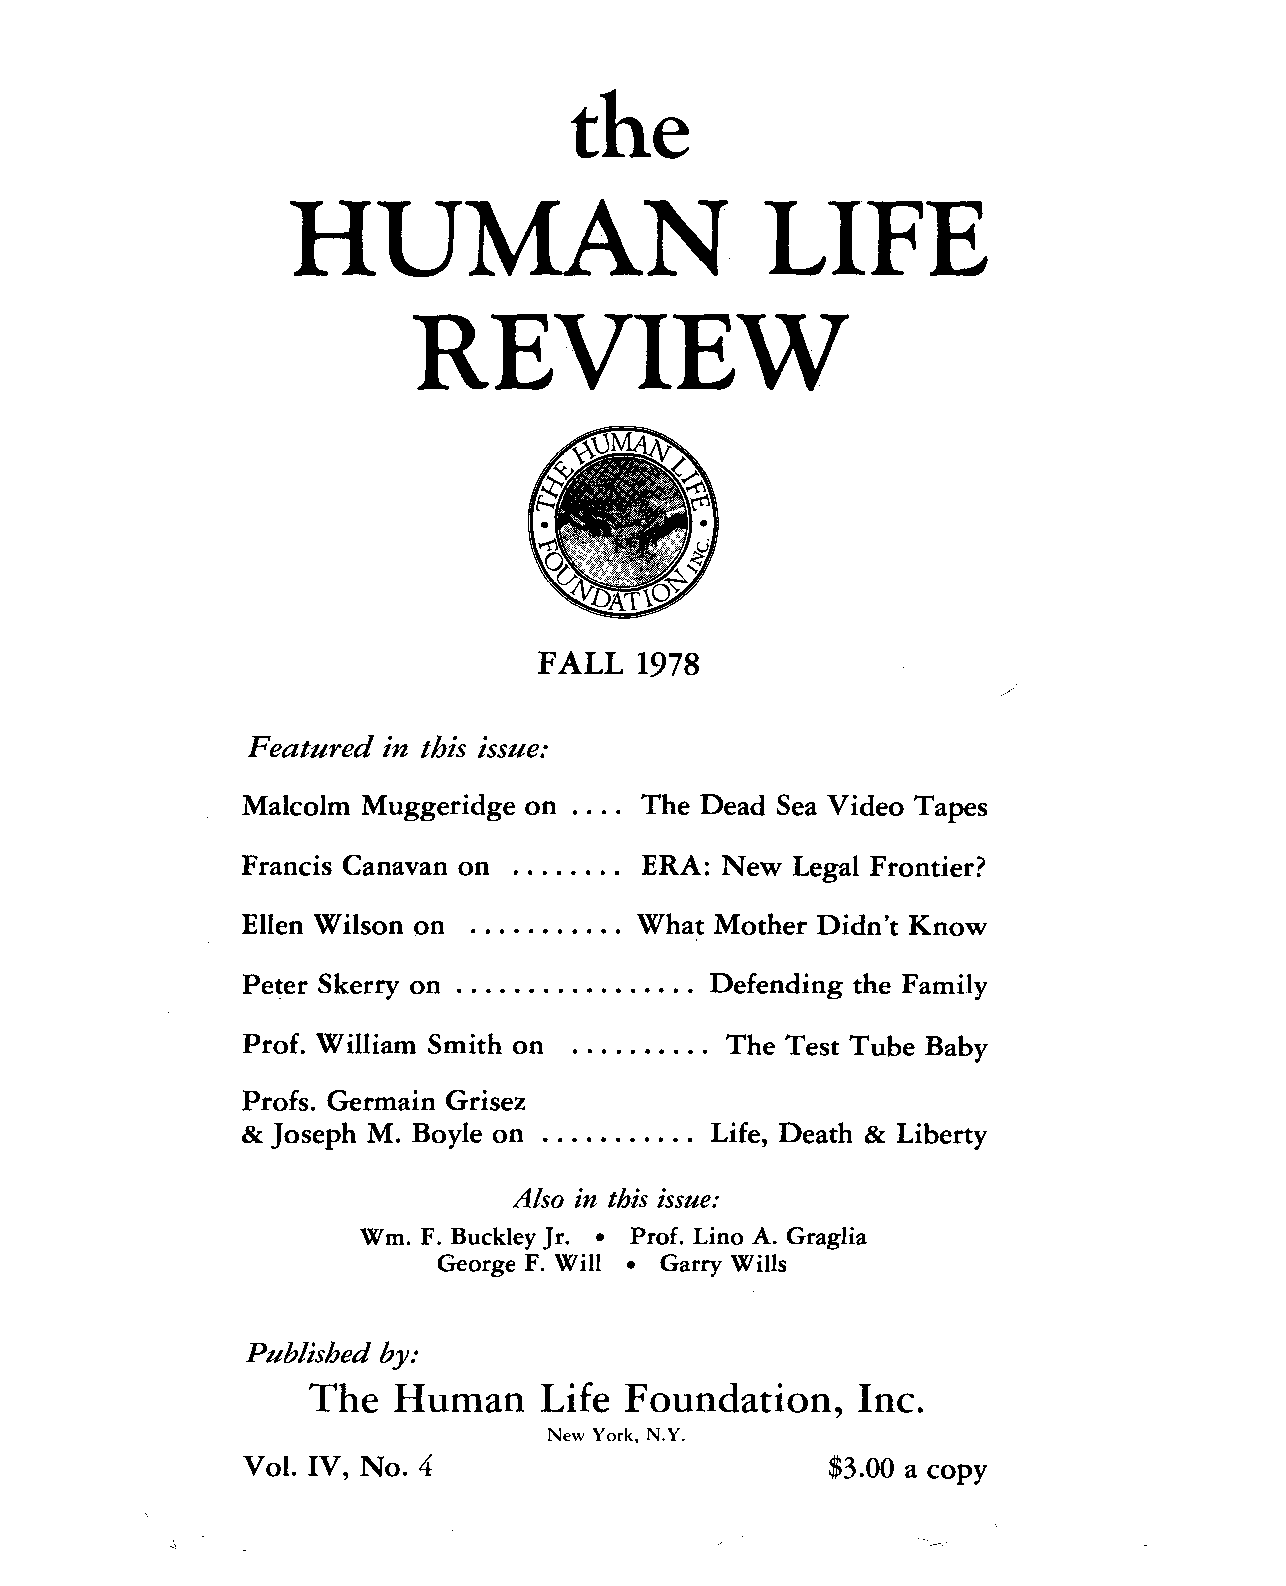 The Human Life Review Fall 1978 - The Human Life Review